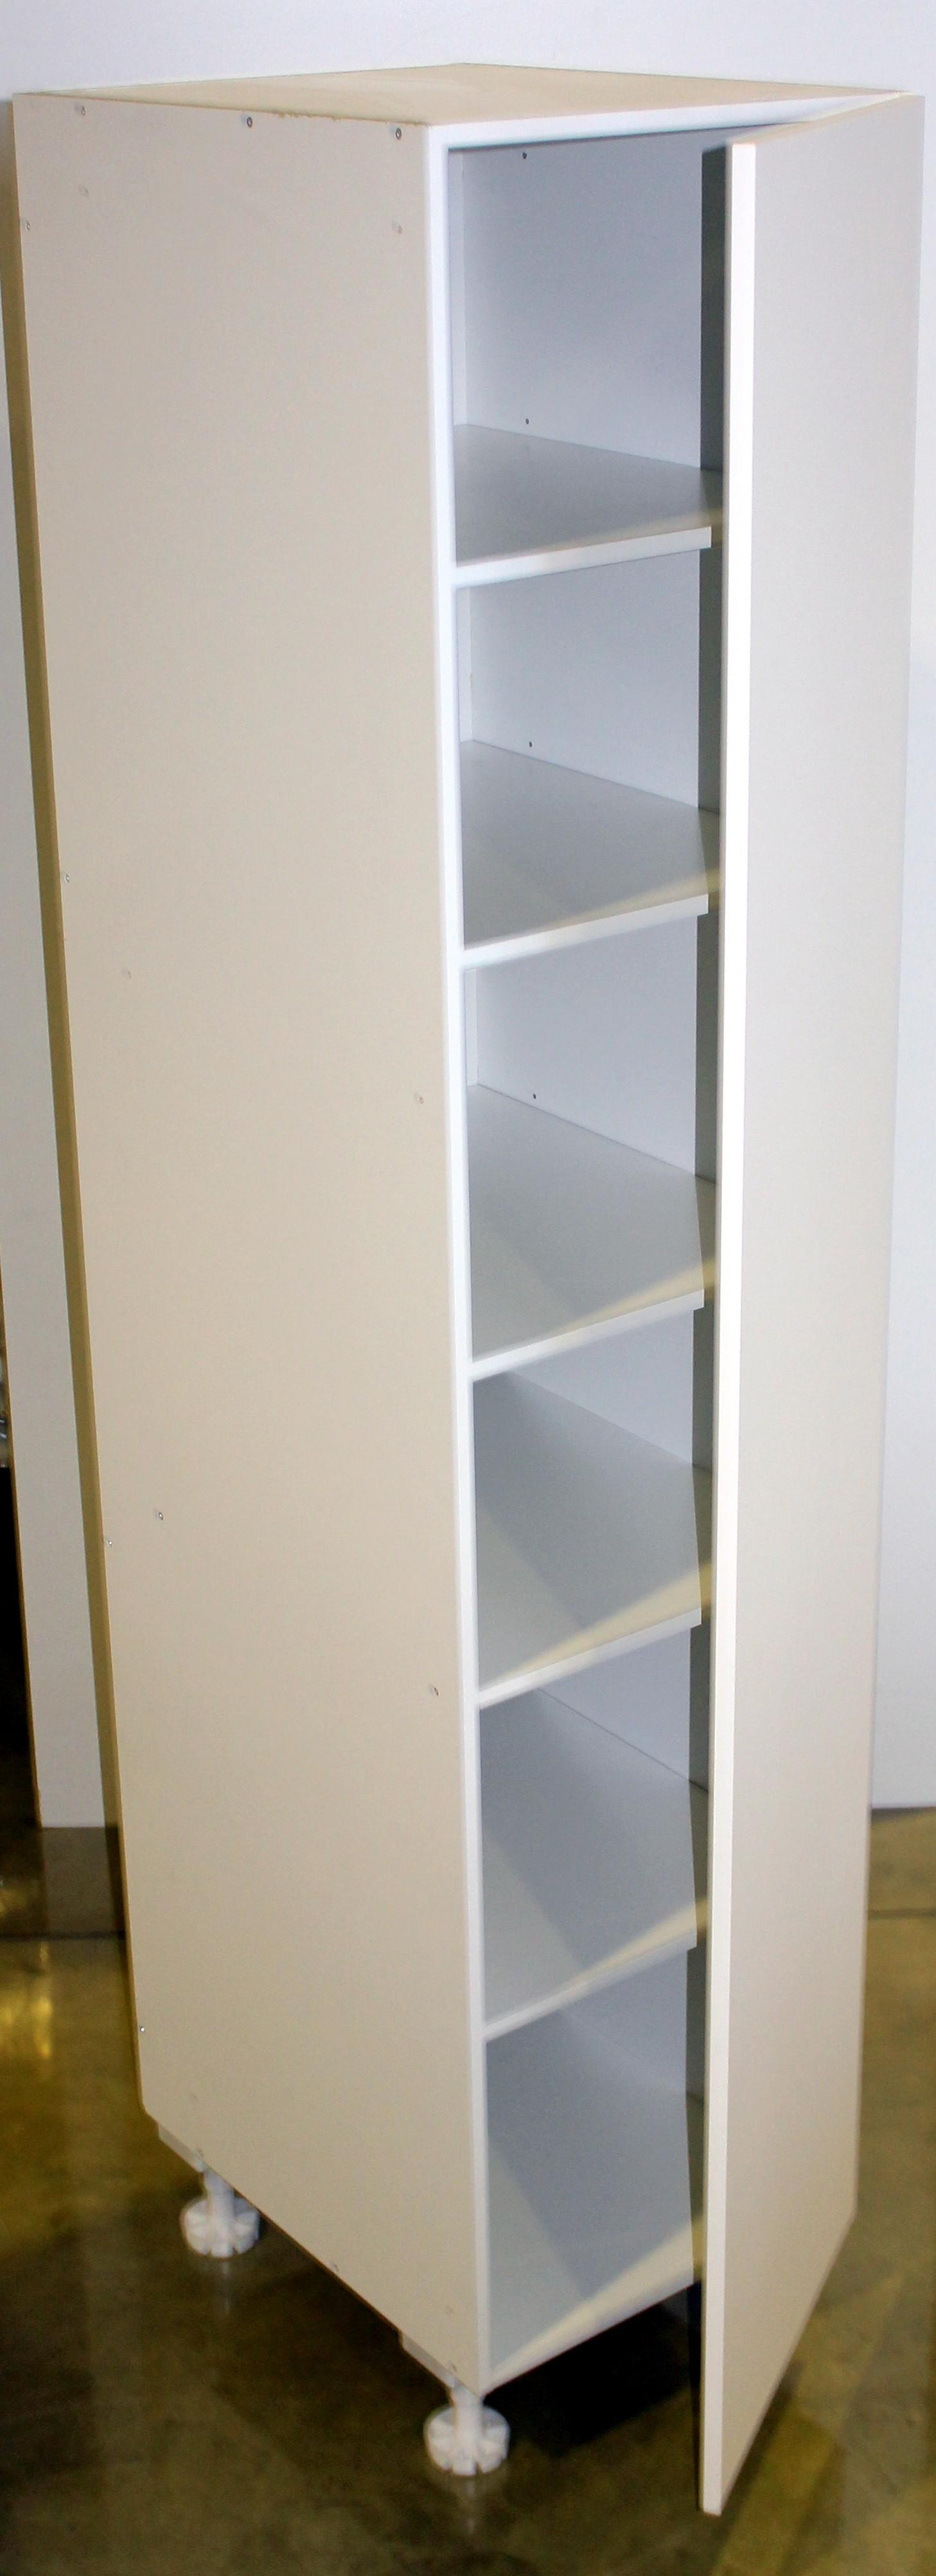 450mm single door pantry cabinet Pantry 800mm